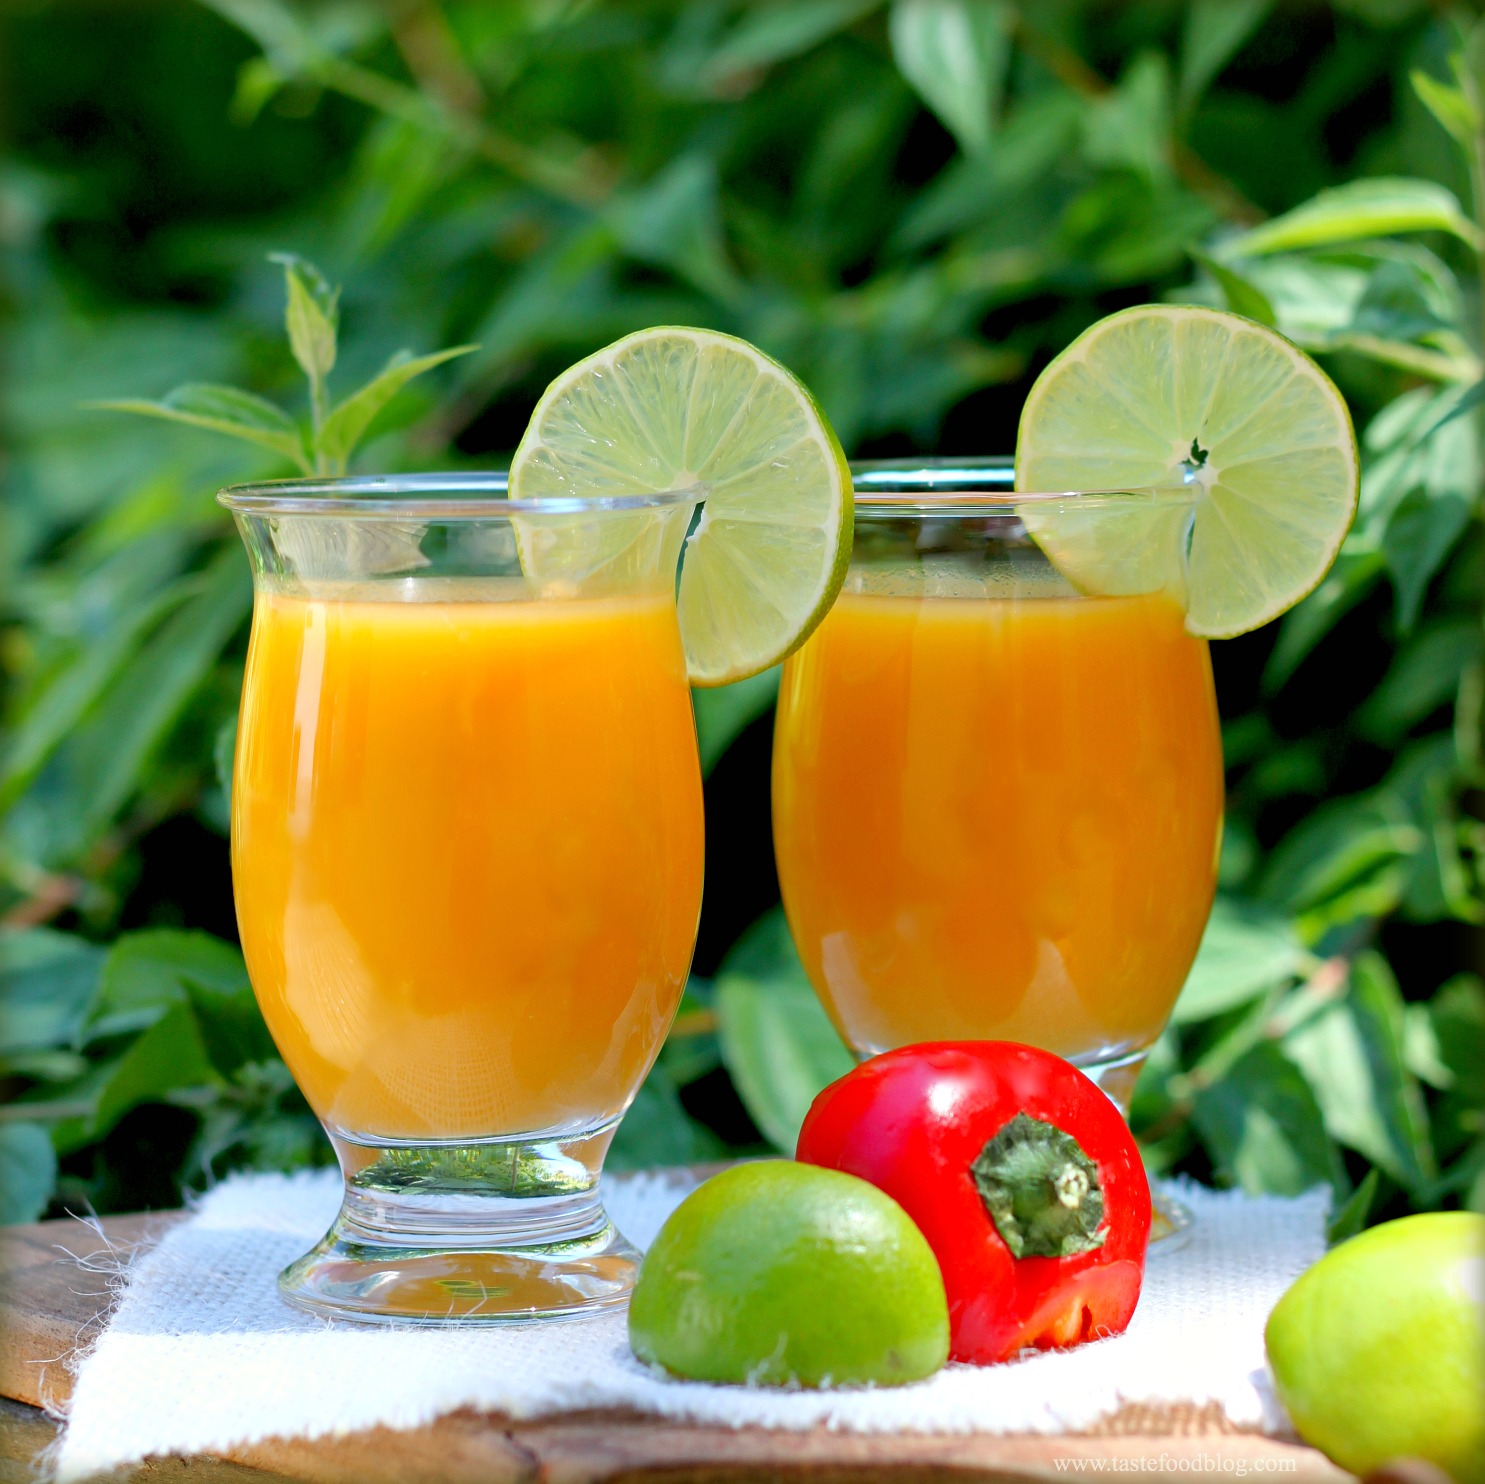 Mango Smoothie with Chili, Lime and Ginger